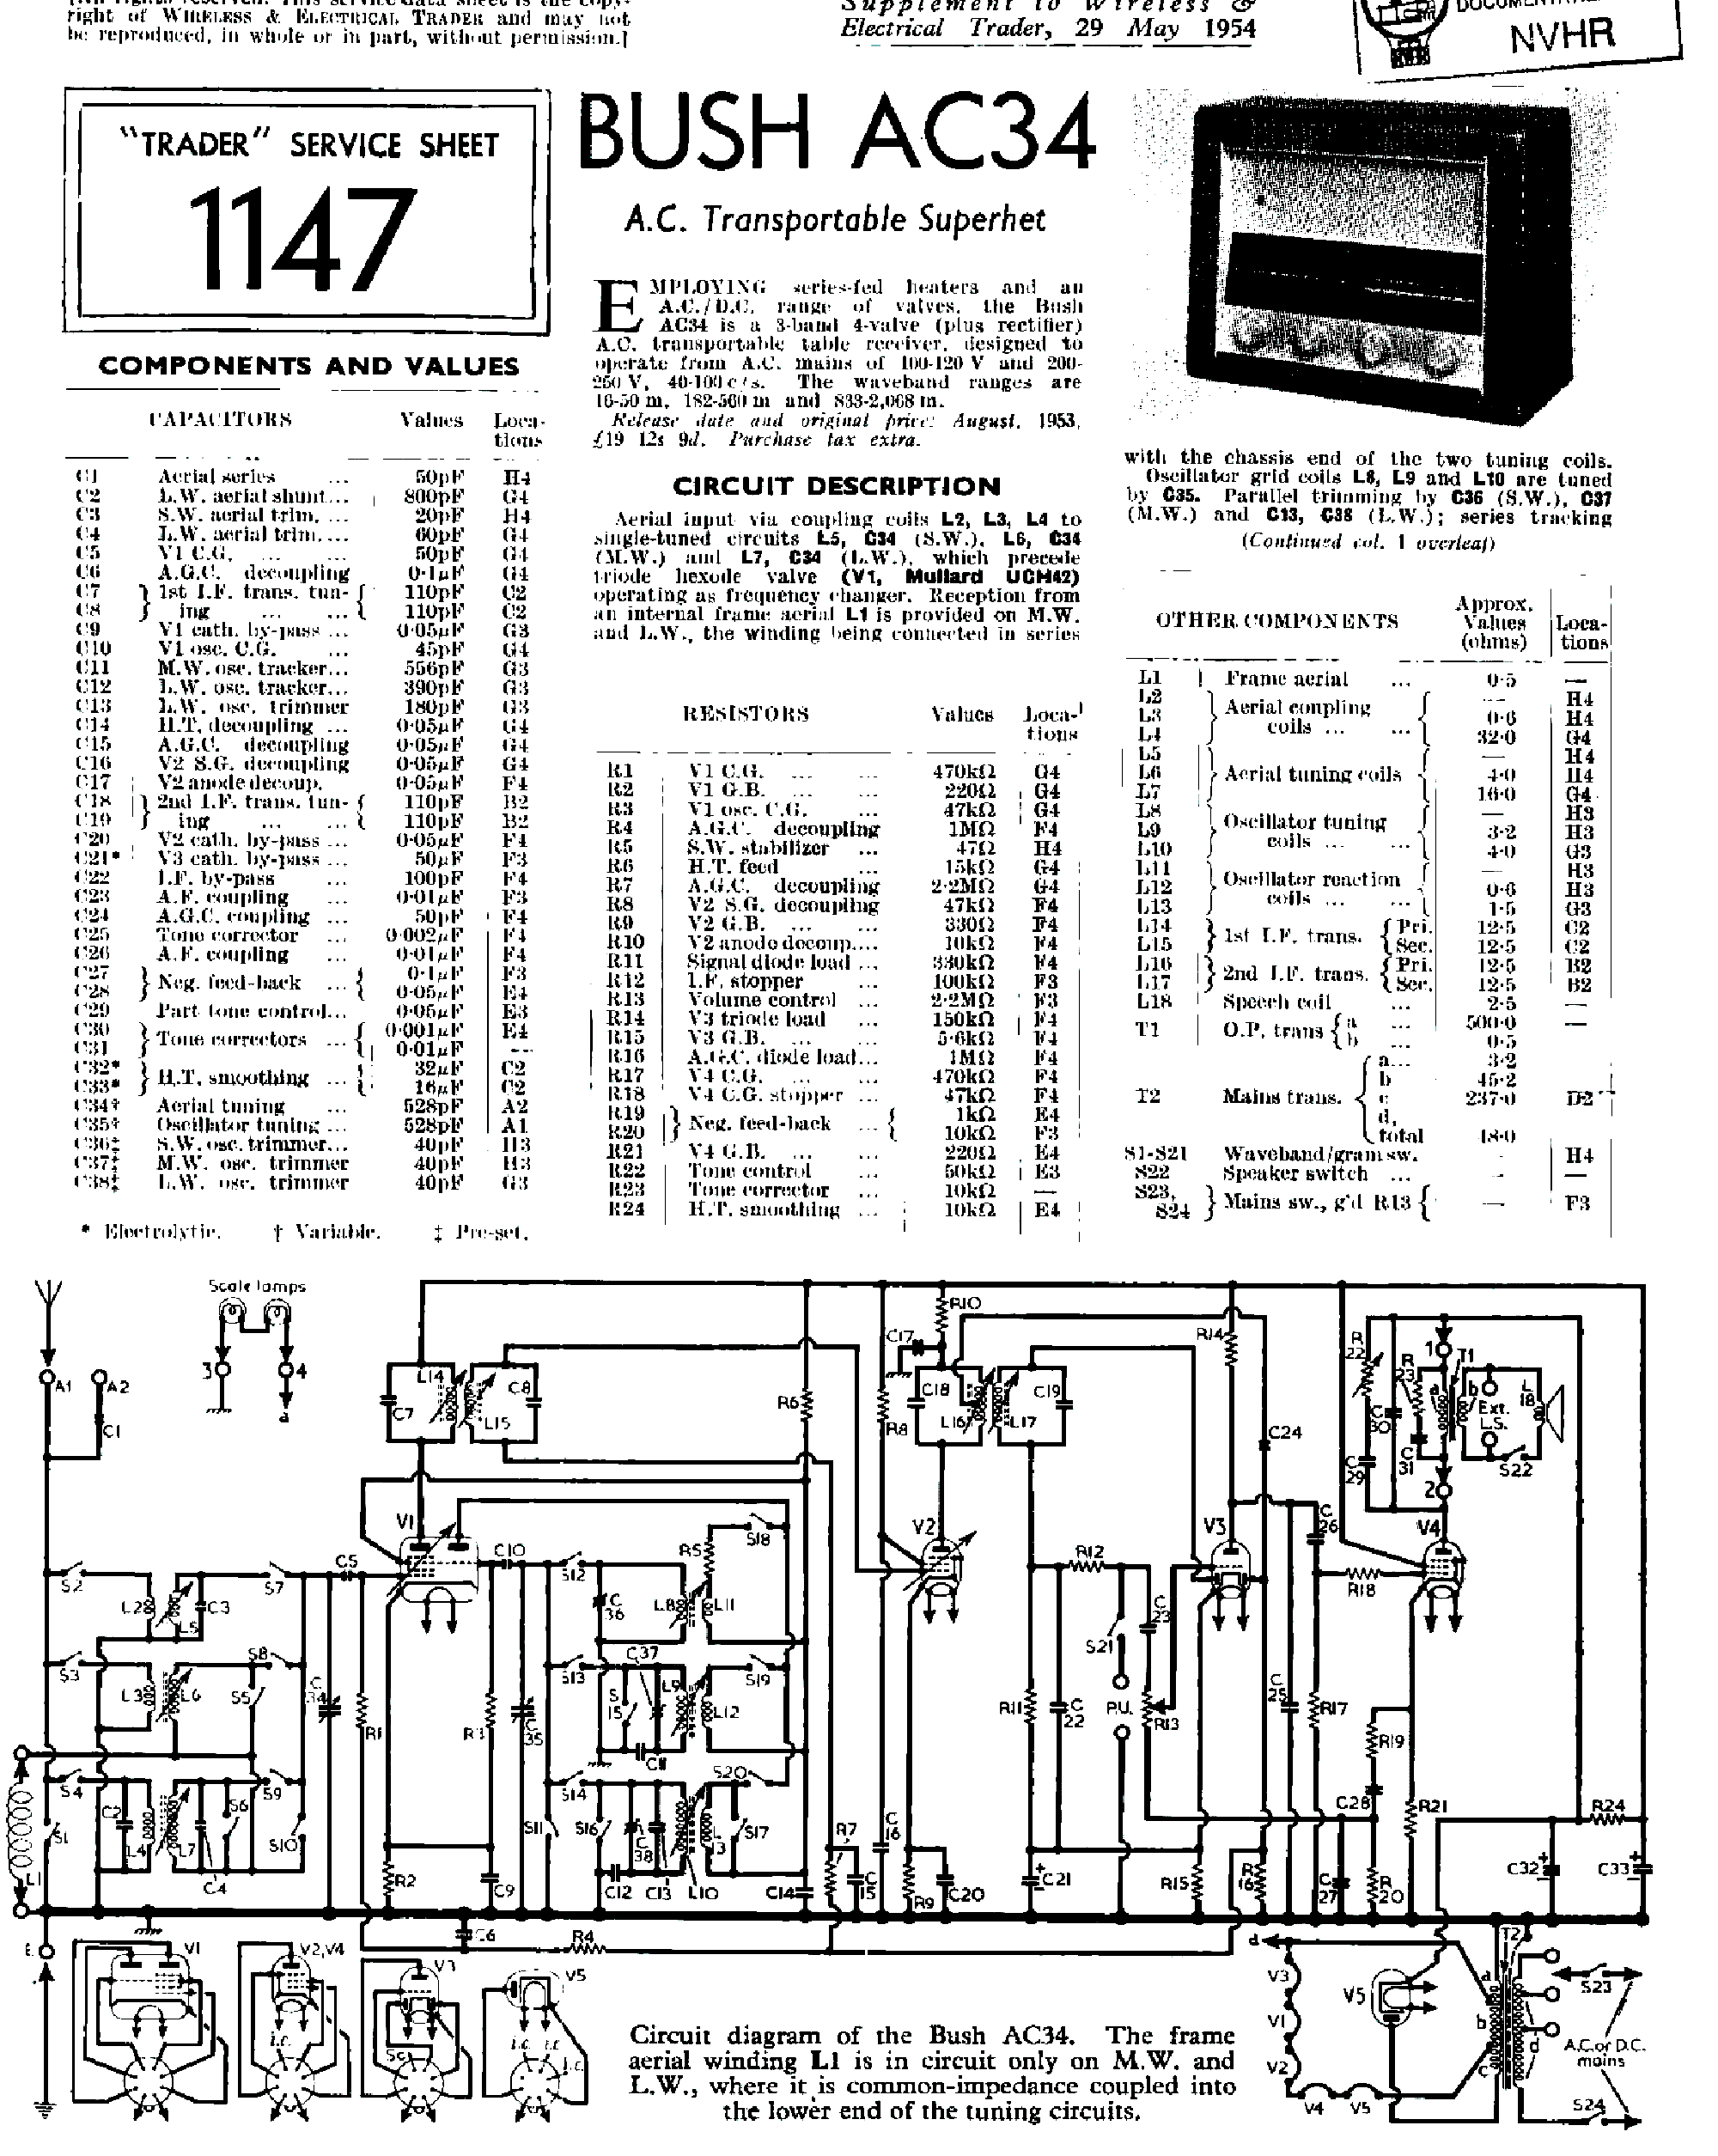 bush ac34 receiver 1954 sm service manual download schematics rh elektrotanya com bush washing machine repair manual bush a126q repair manual